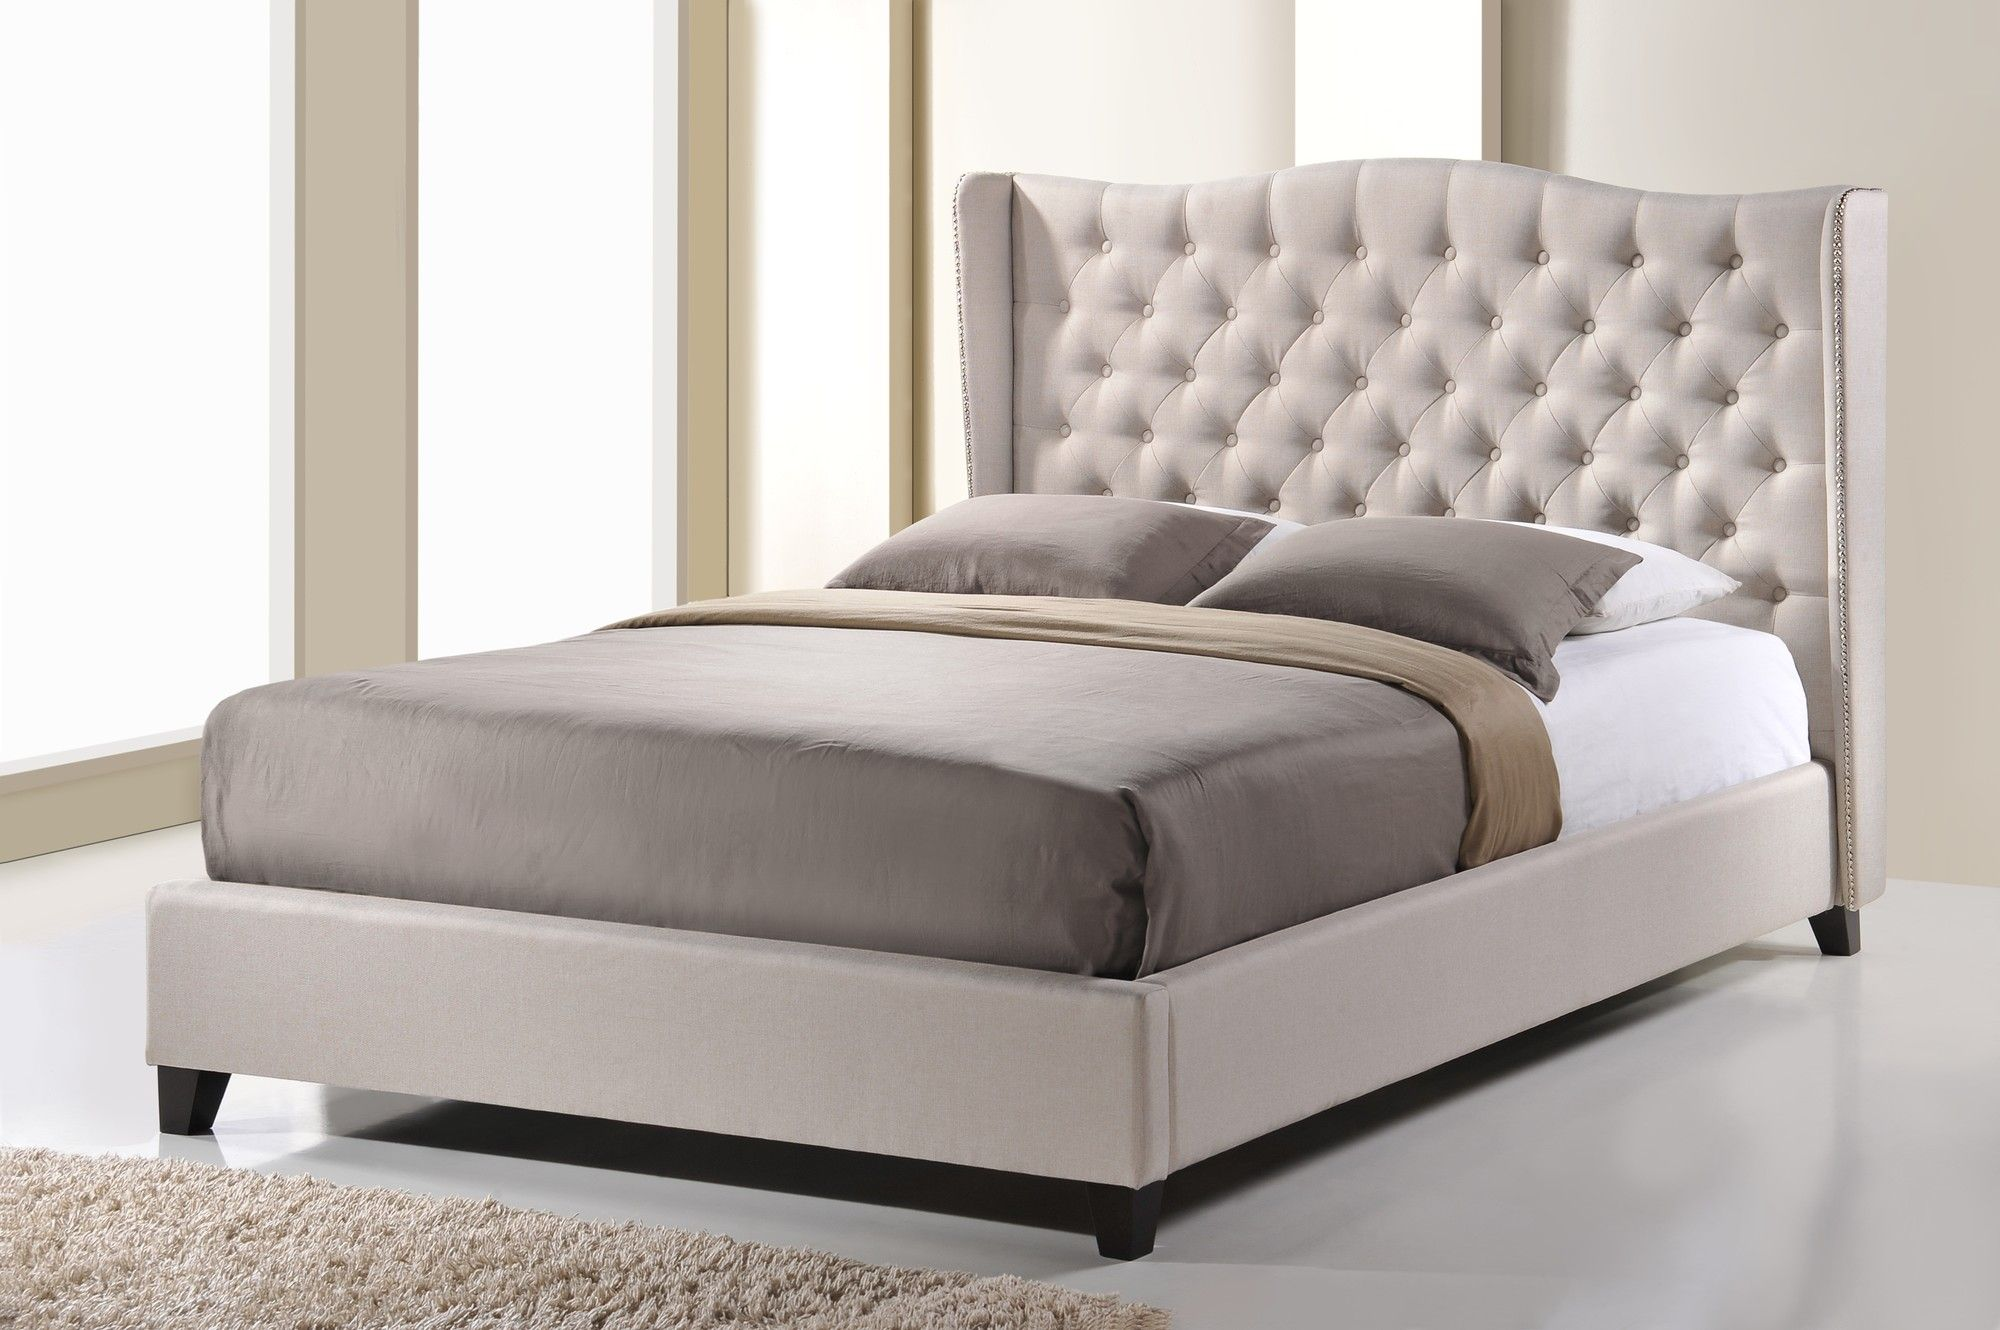 Wayfair Upholstered Bed Home Wayfair Upholstered Bed King: Online Home Store For Furniture, Decor